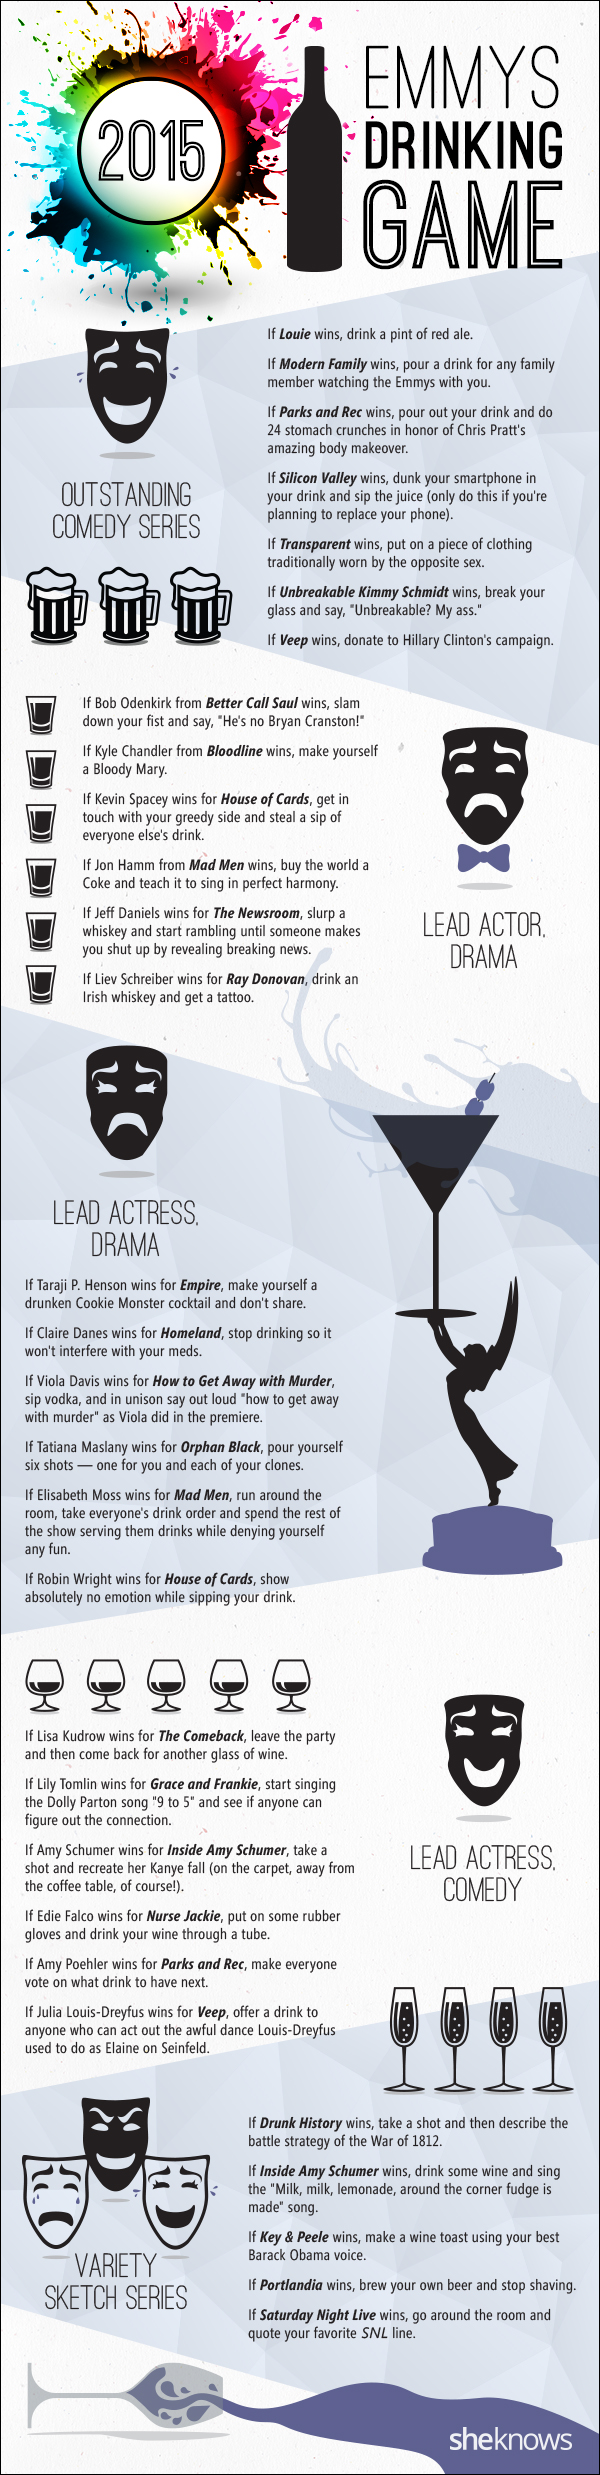 Emmys 2015 Drinking Game